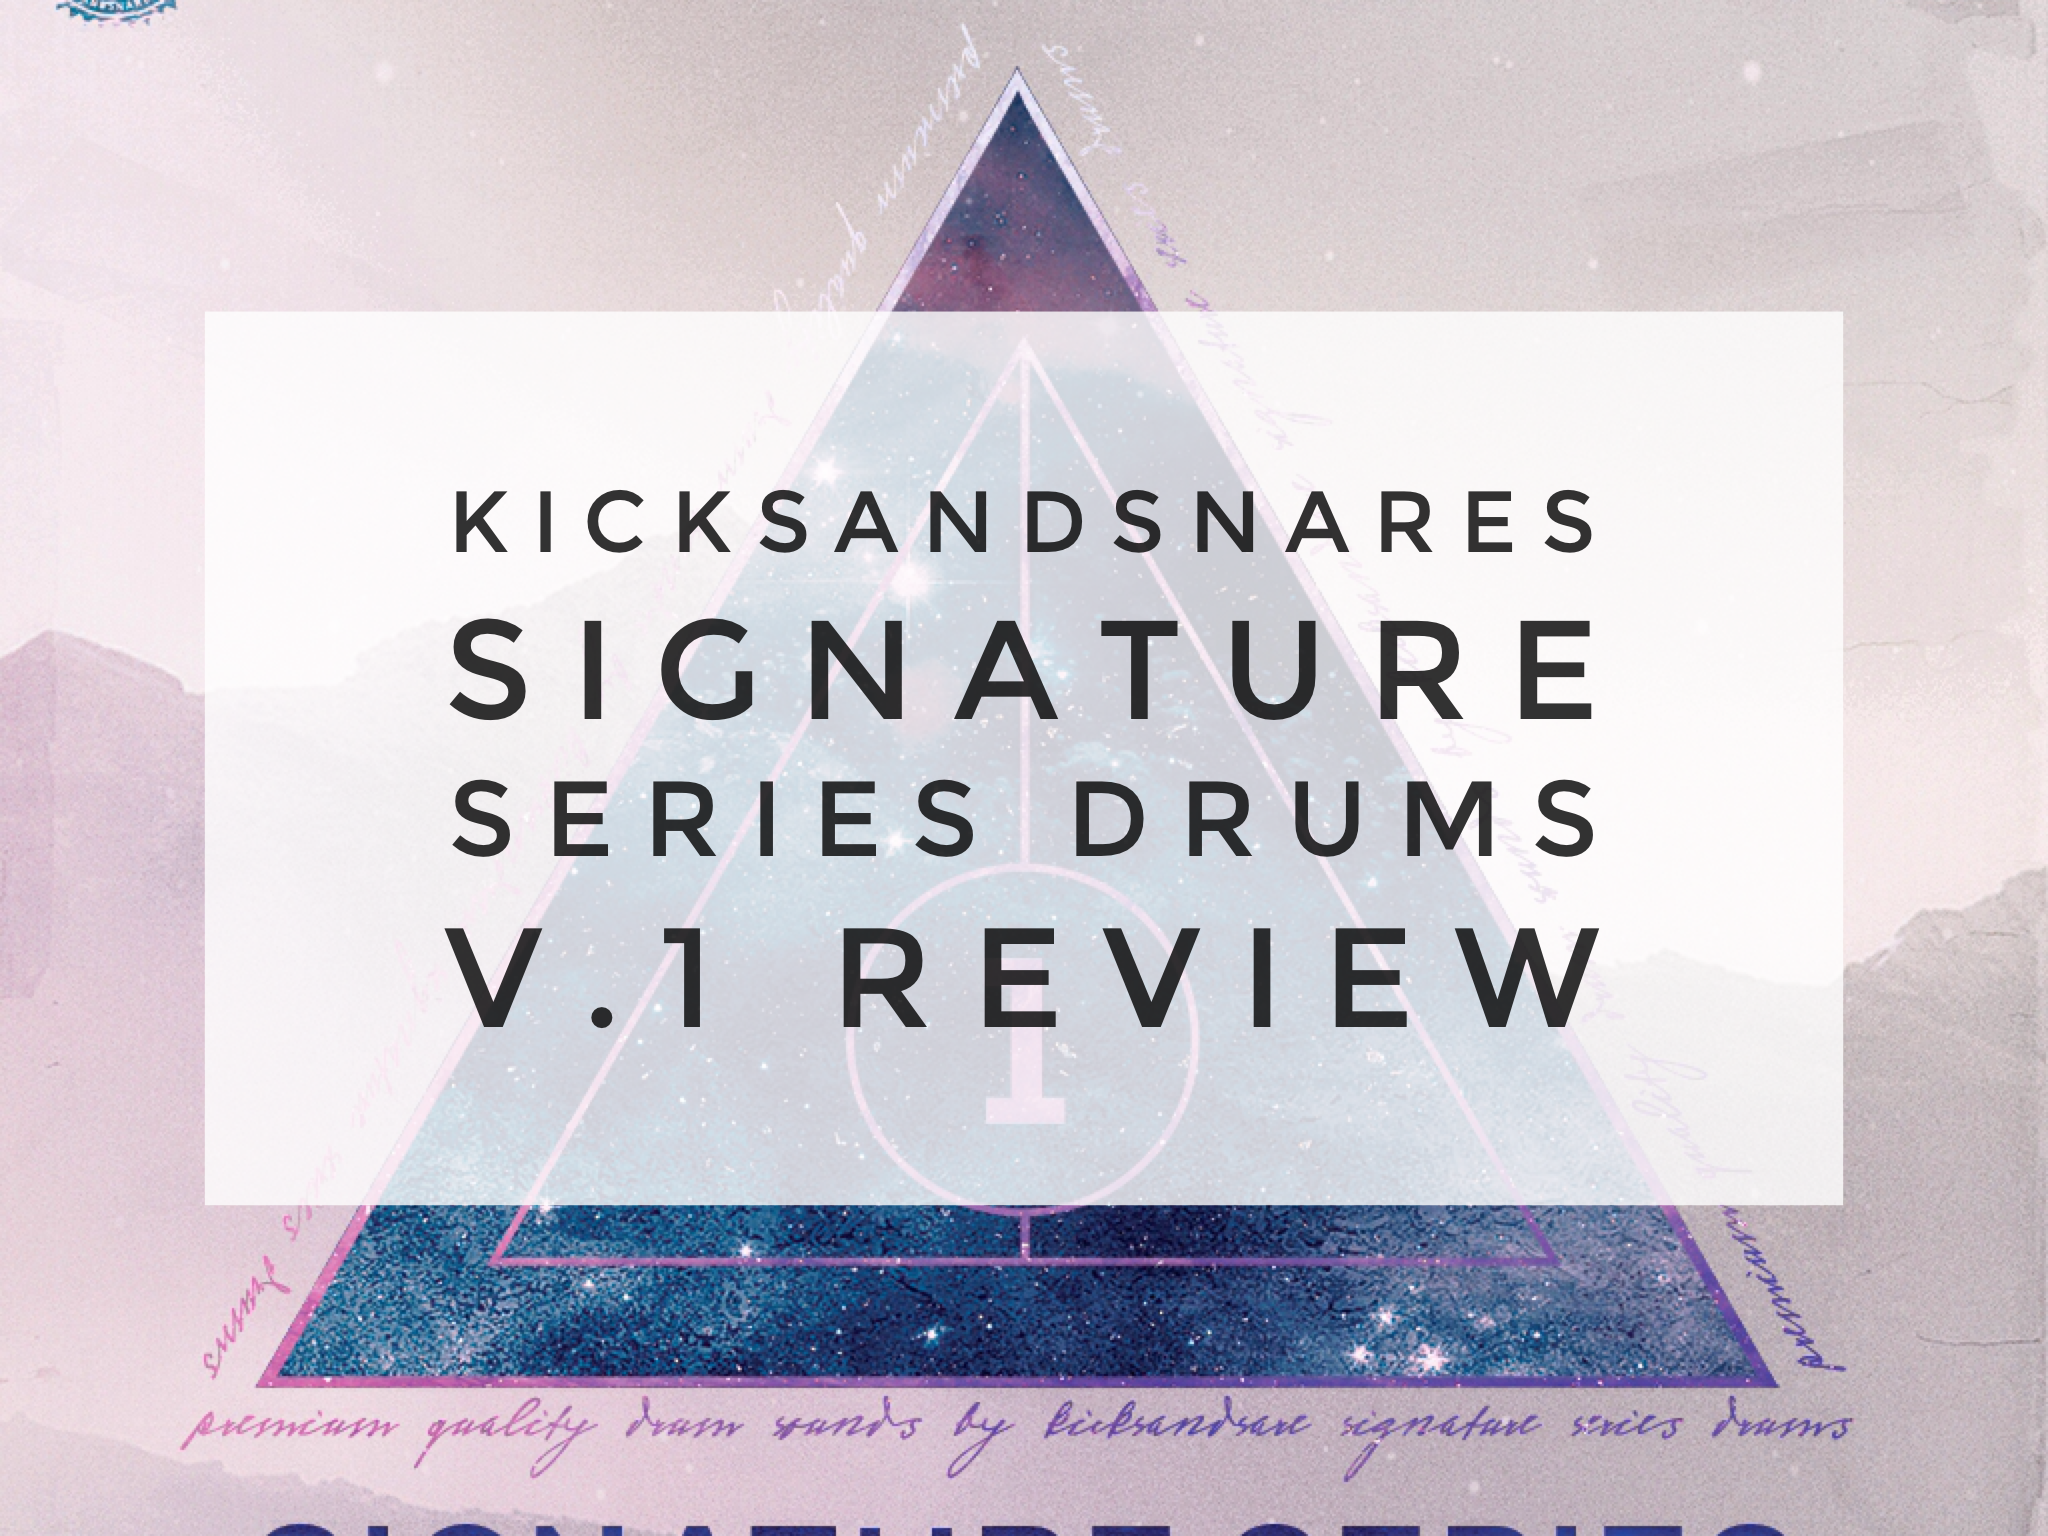 KICKSANDSNARES Signature Series Drums V.1 - SuperHeroSamples.com Review